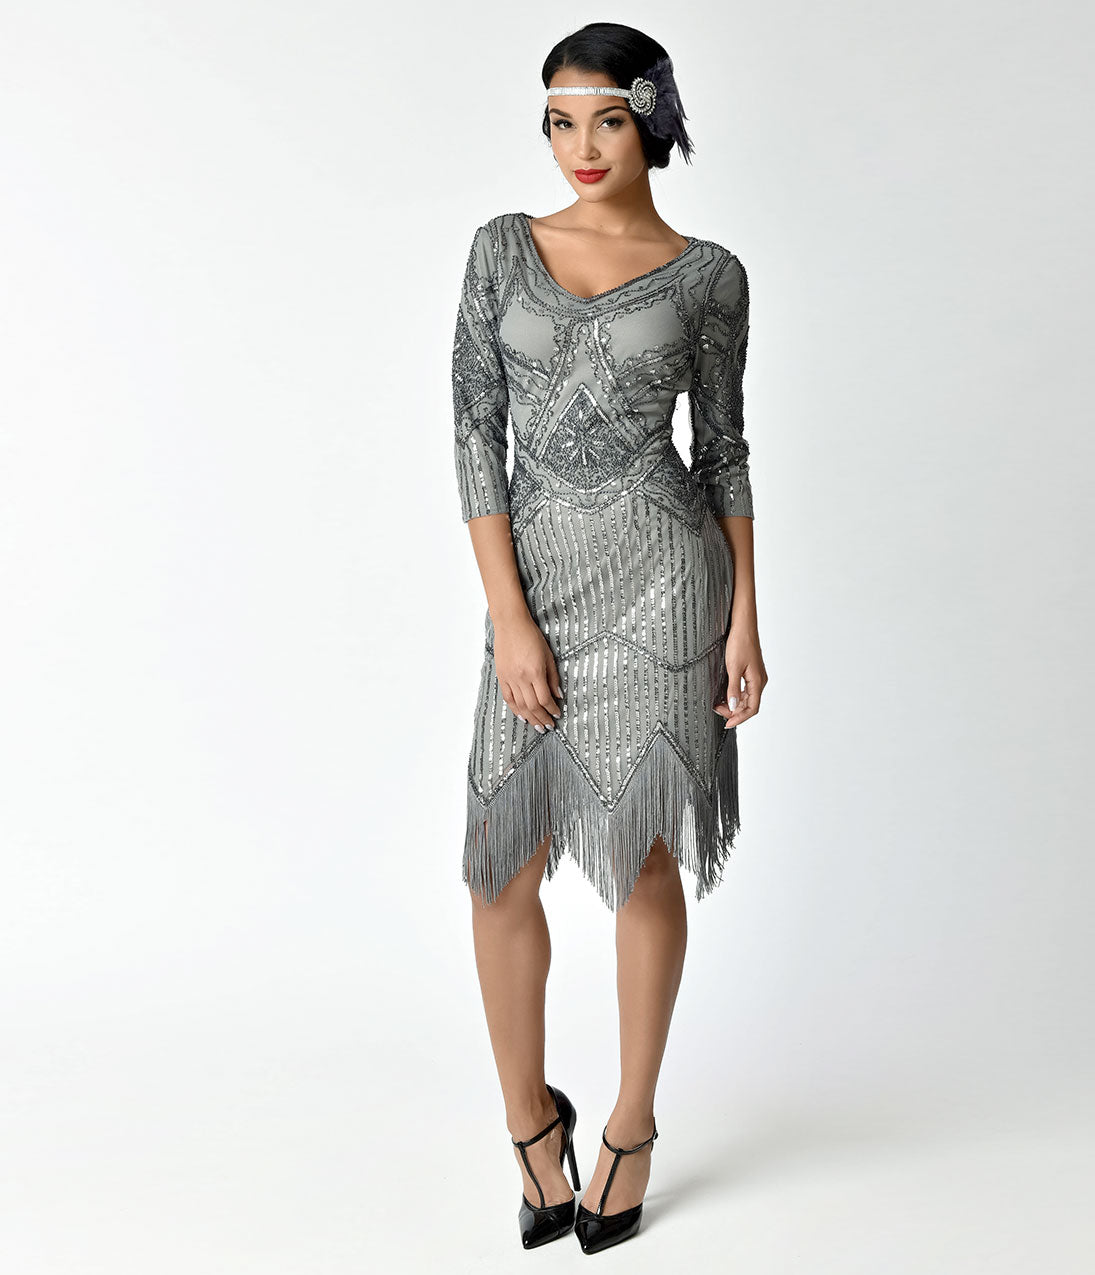 Roaring 20s Costumes- Flapper Costumes, Gangster Costumes 1920S Grey Beaded Sequin Sleeved Noemie Fringe Flapper Dress $98.00 AT vintagedancer.com